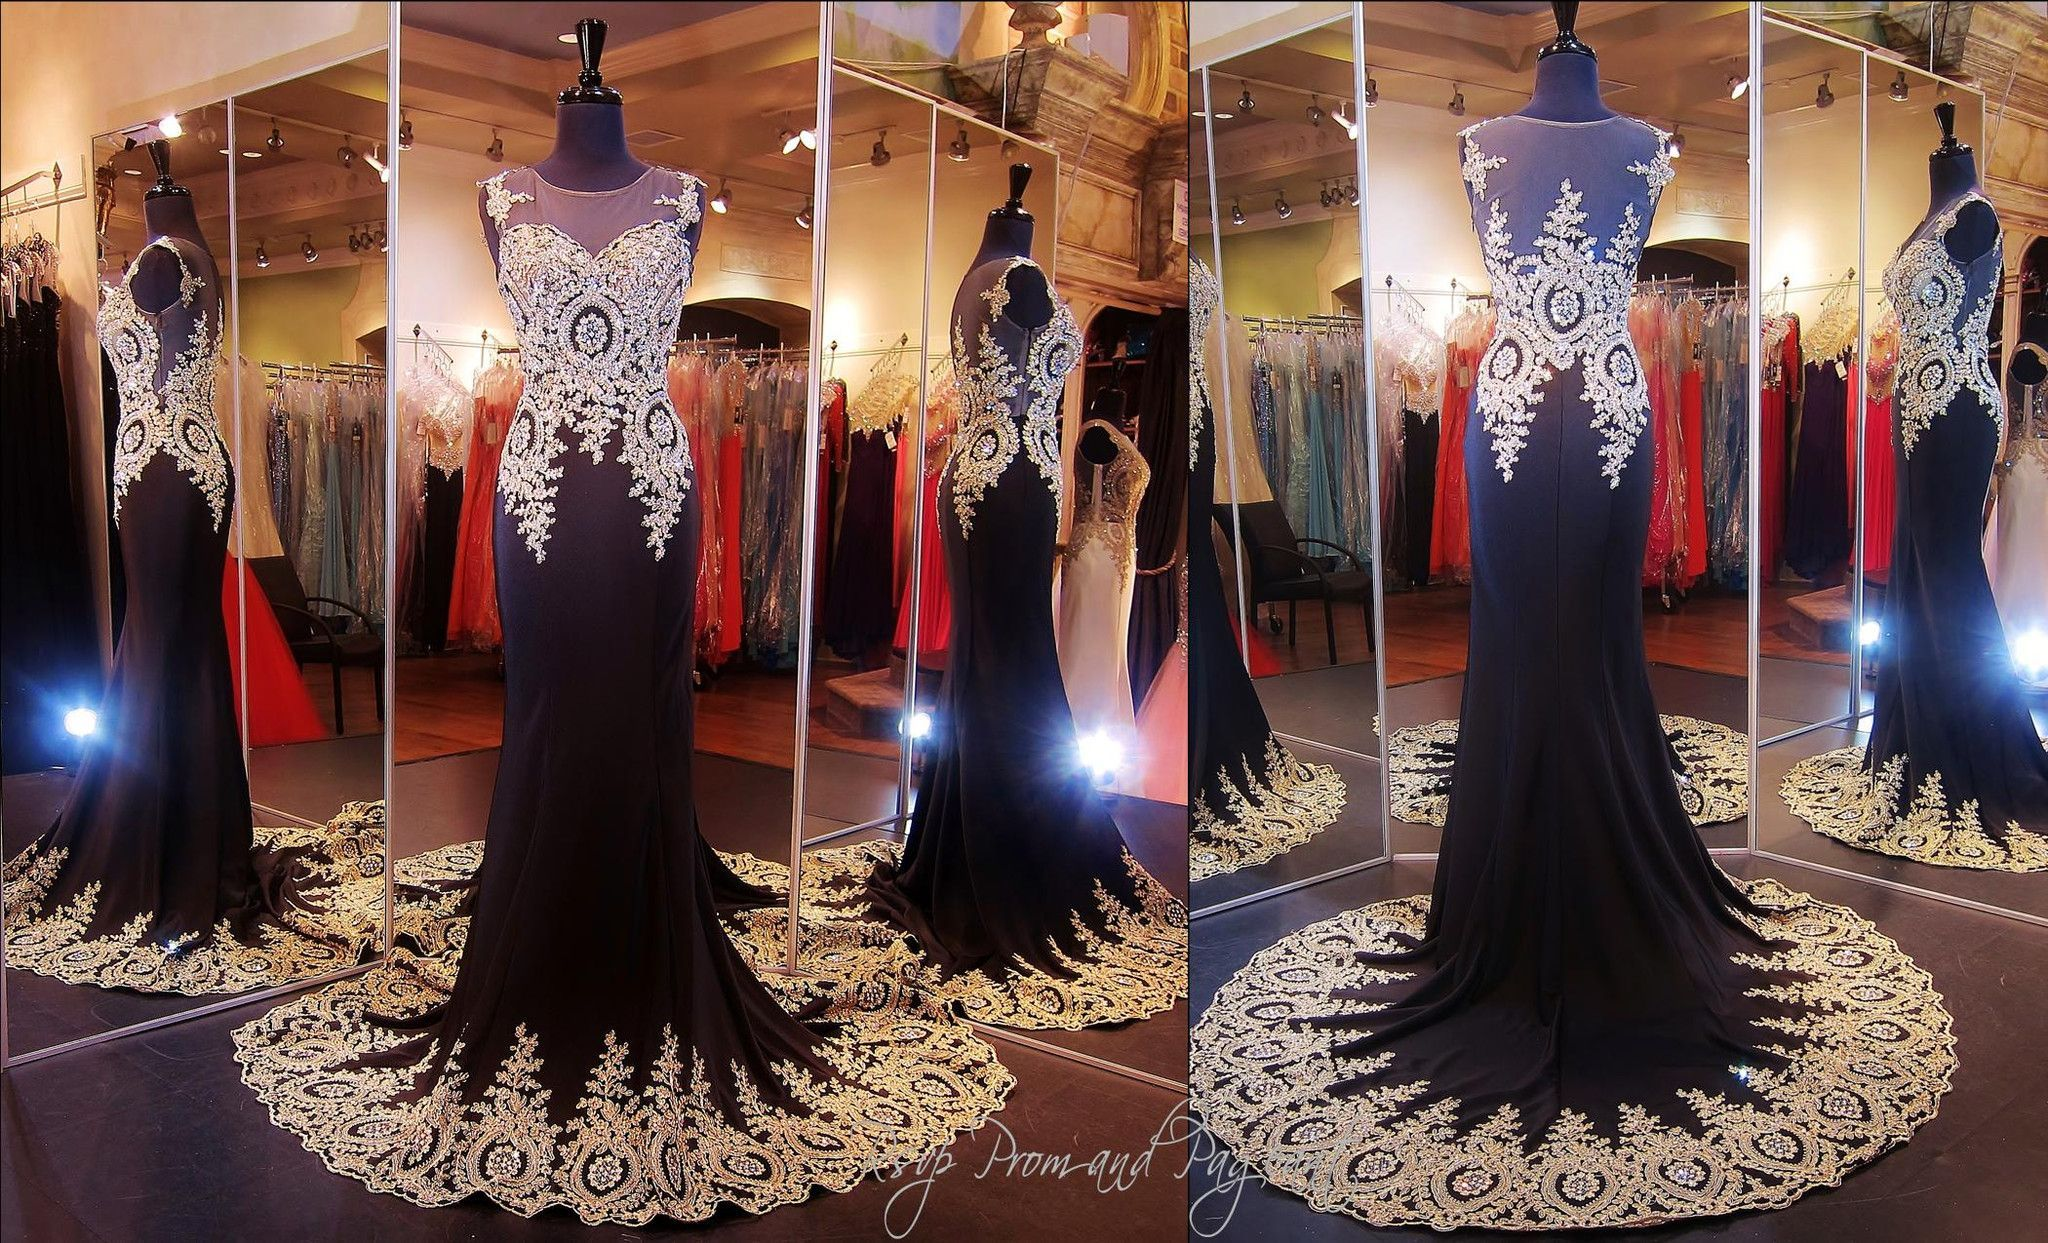 Black Gold Formfitting Pageant Prom Dress Train Illusion Bodice 115sk039120 Prom Dresses Beautiful Prom Dresses Dresses